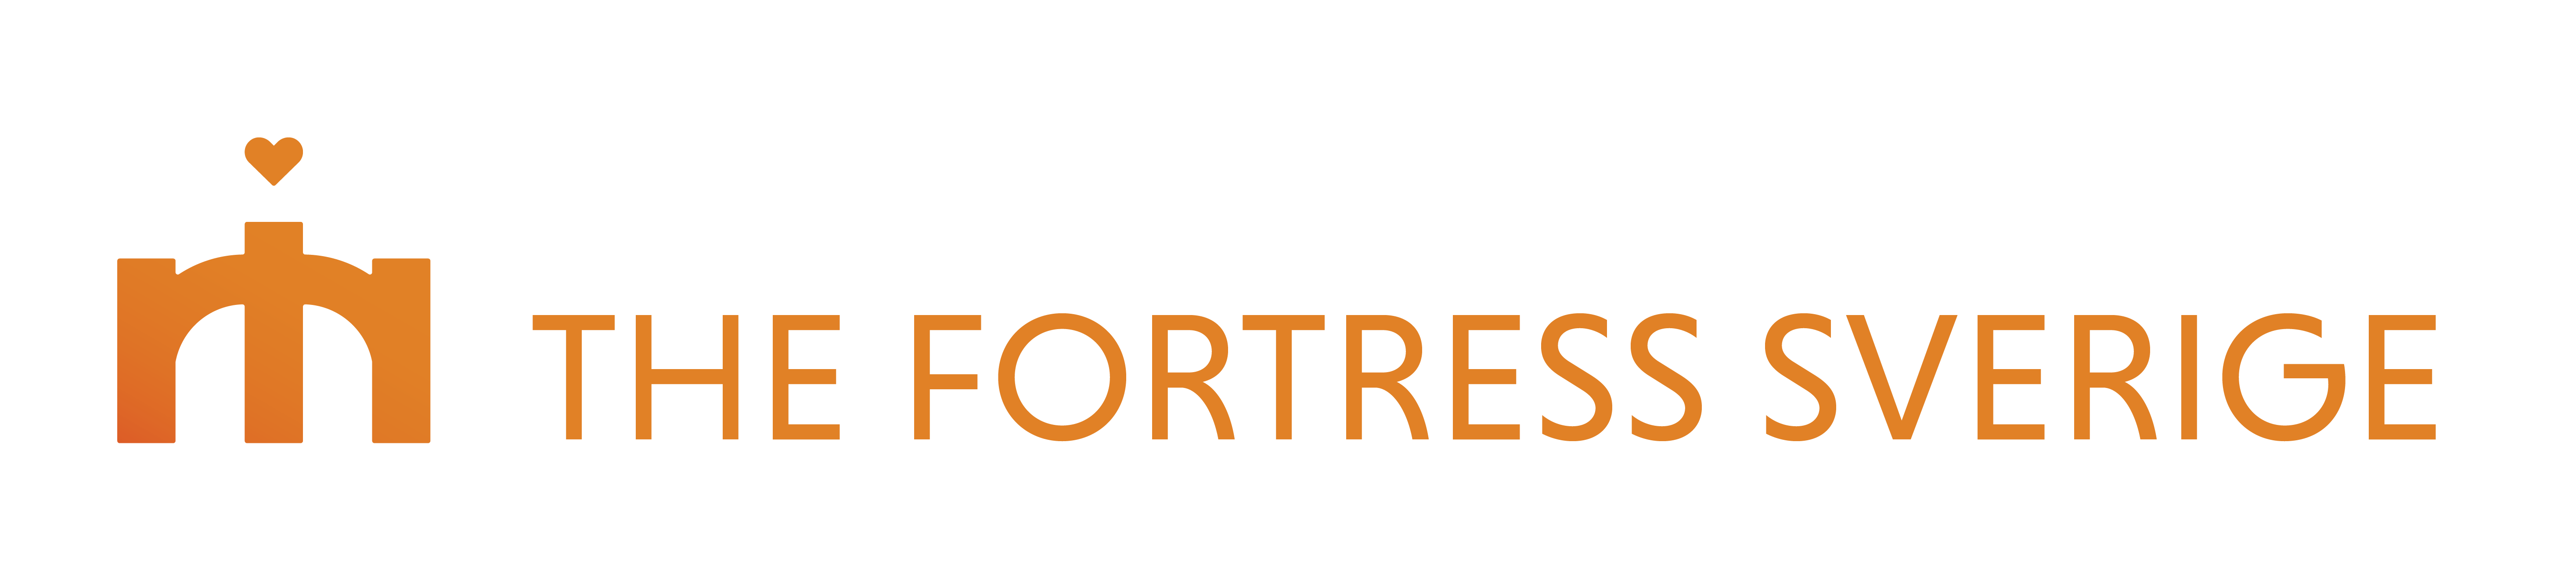 The Fortress Logo Symbol Text Transparent Horizontal